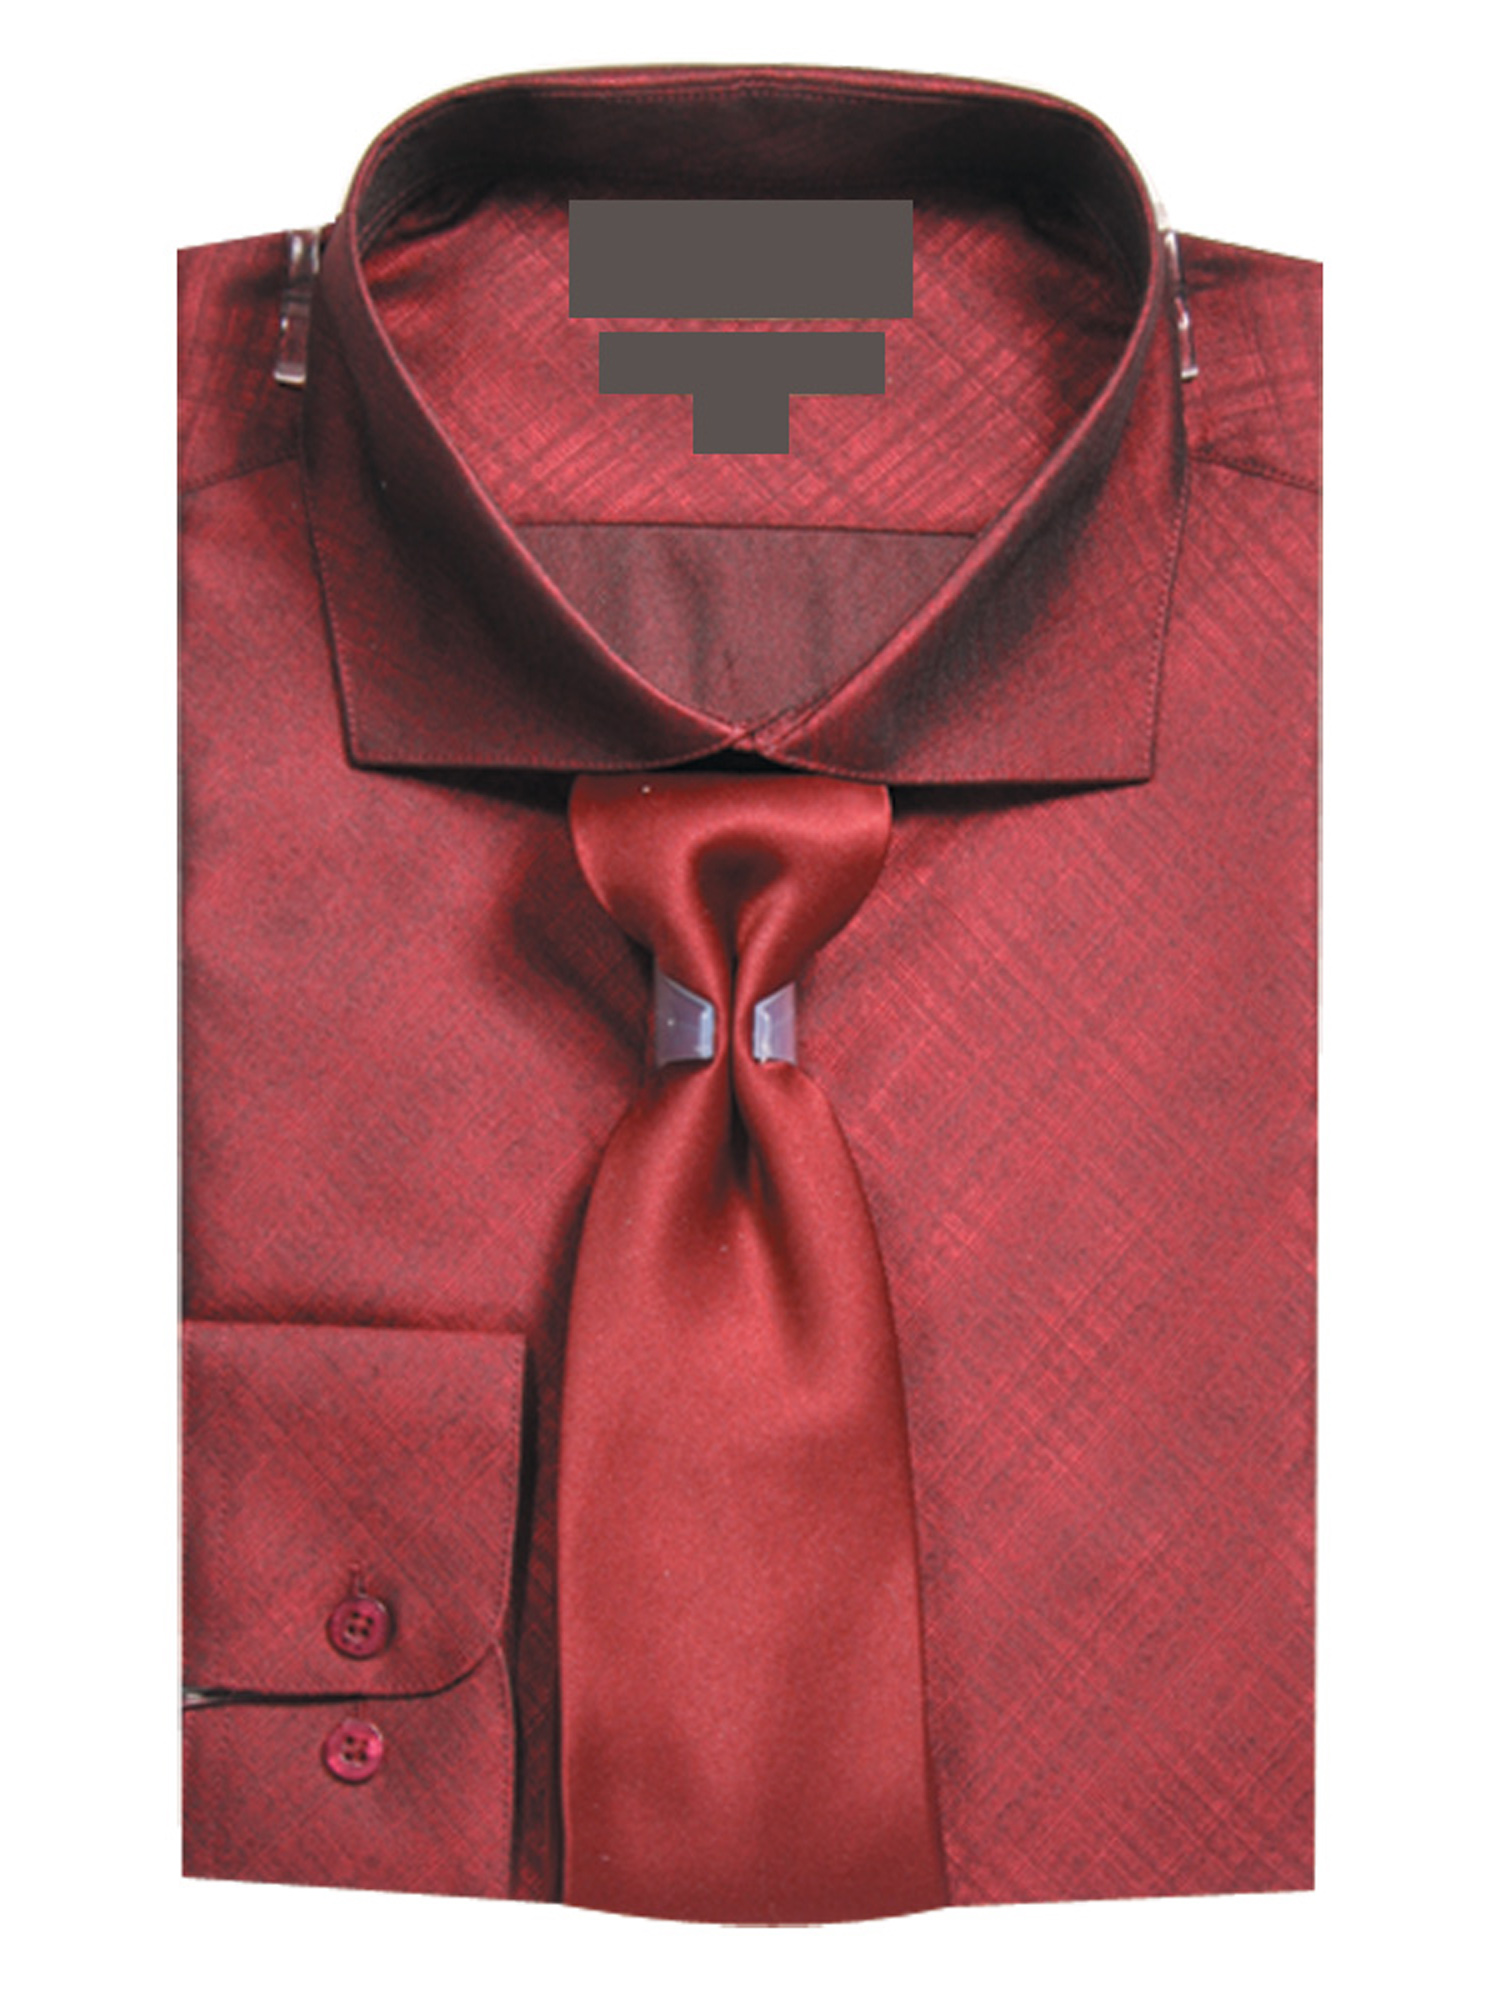 Sunrise Outlet Mens Slim Fit Metallic Texture Dress Shirt With